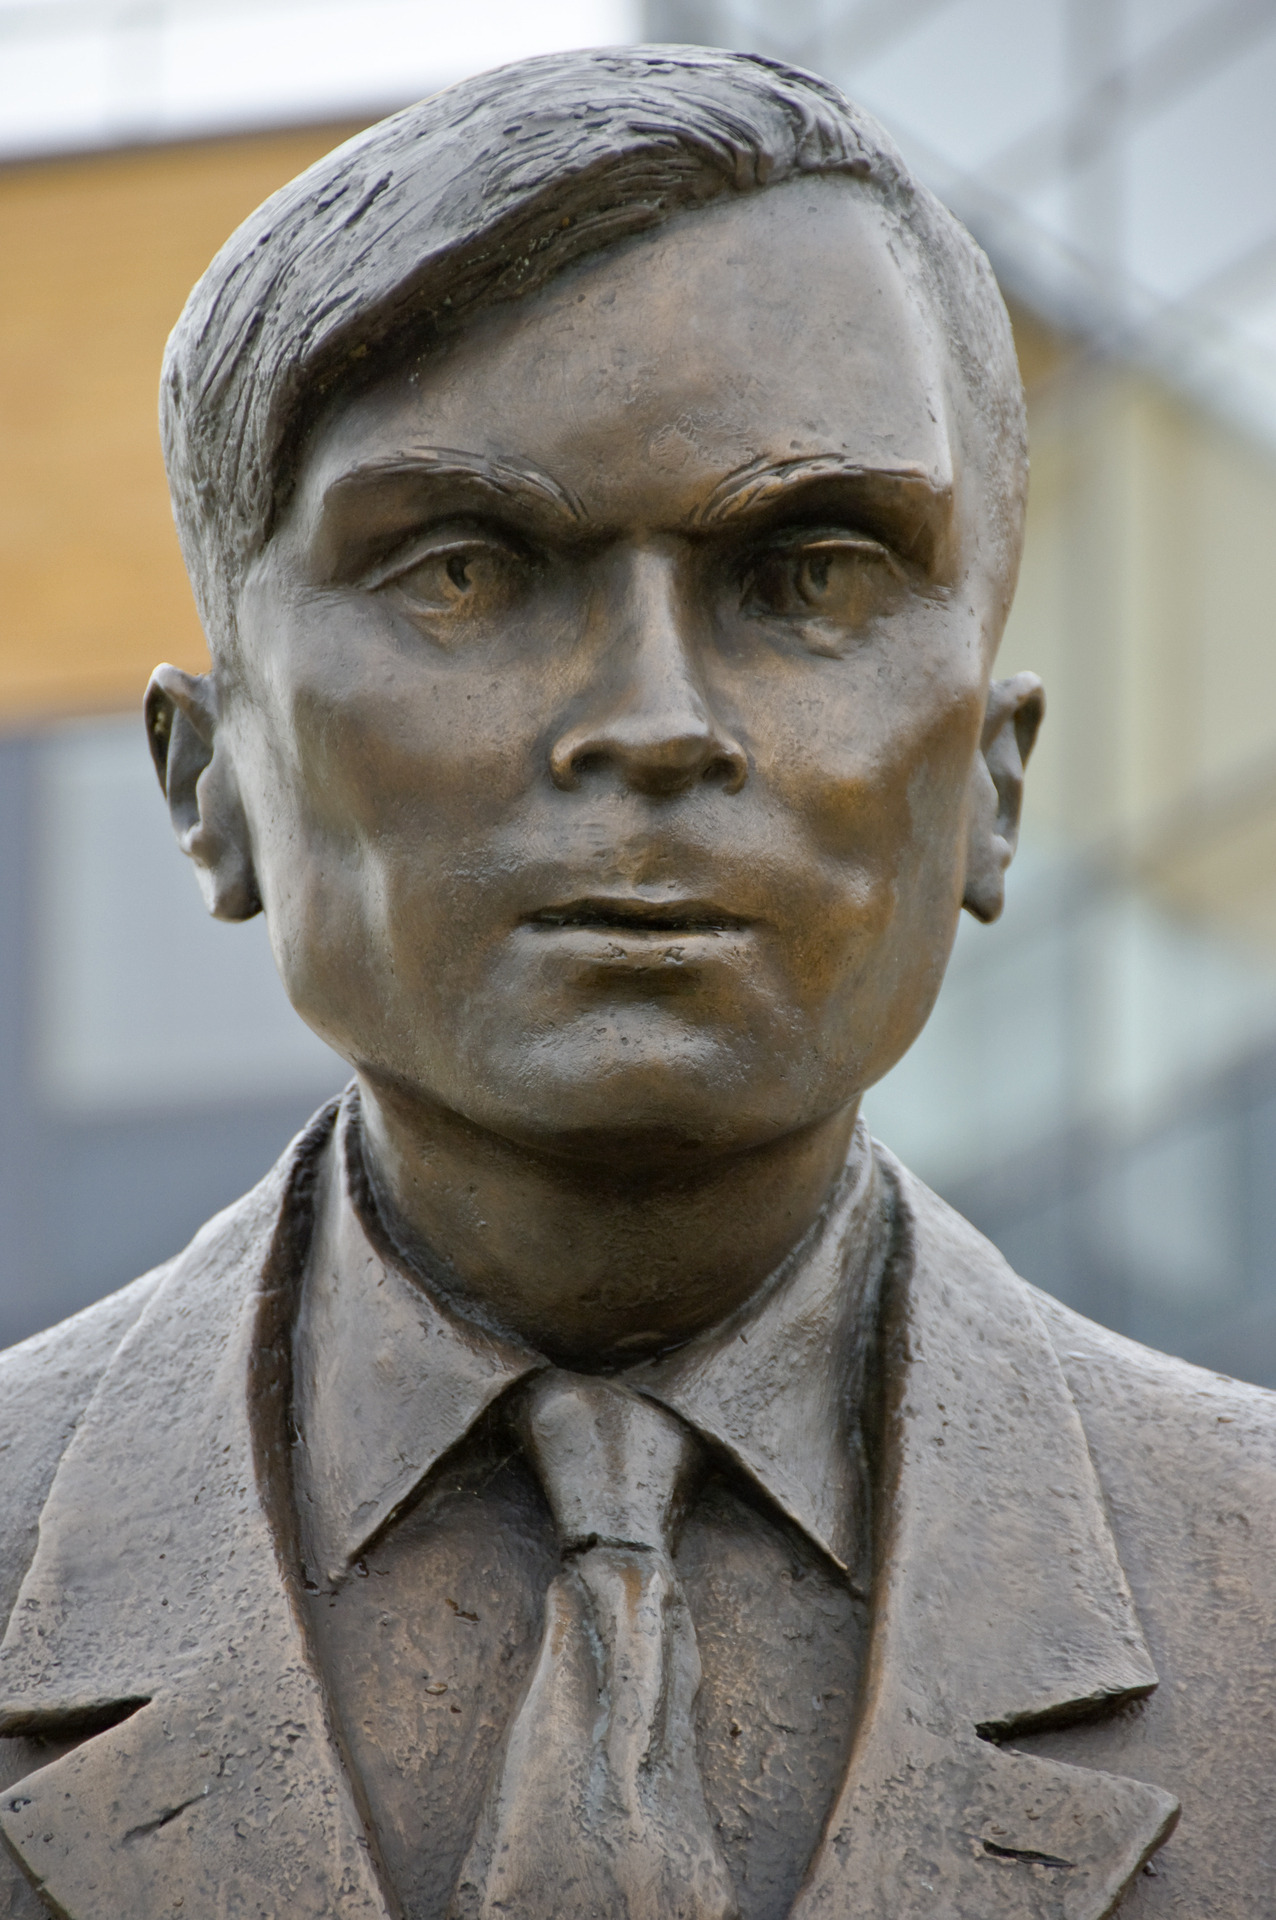 Alan Turing (1912–1954), World War II codebreaker, pioneer of computer science, convicted for gross indecency for having a relationship with a man in 1952, cruelly punished with hormone injections which many believe led him to commit suicide in 1954.  If you are in the United Kingdom, sign the petition to have Alan Turing on £10 notes.